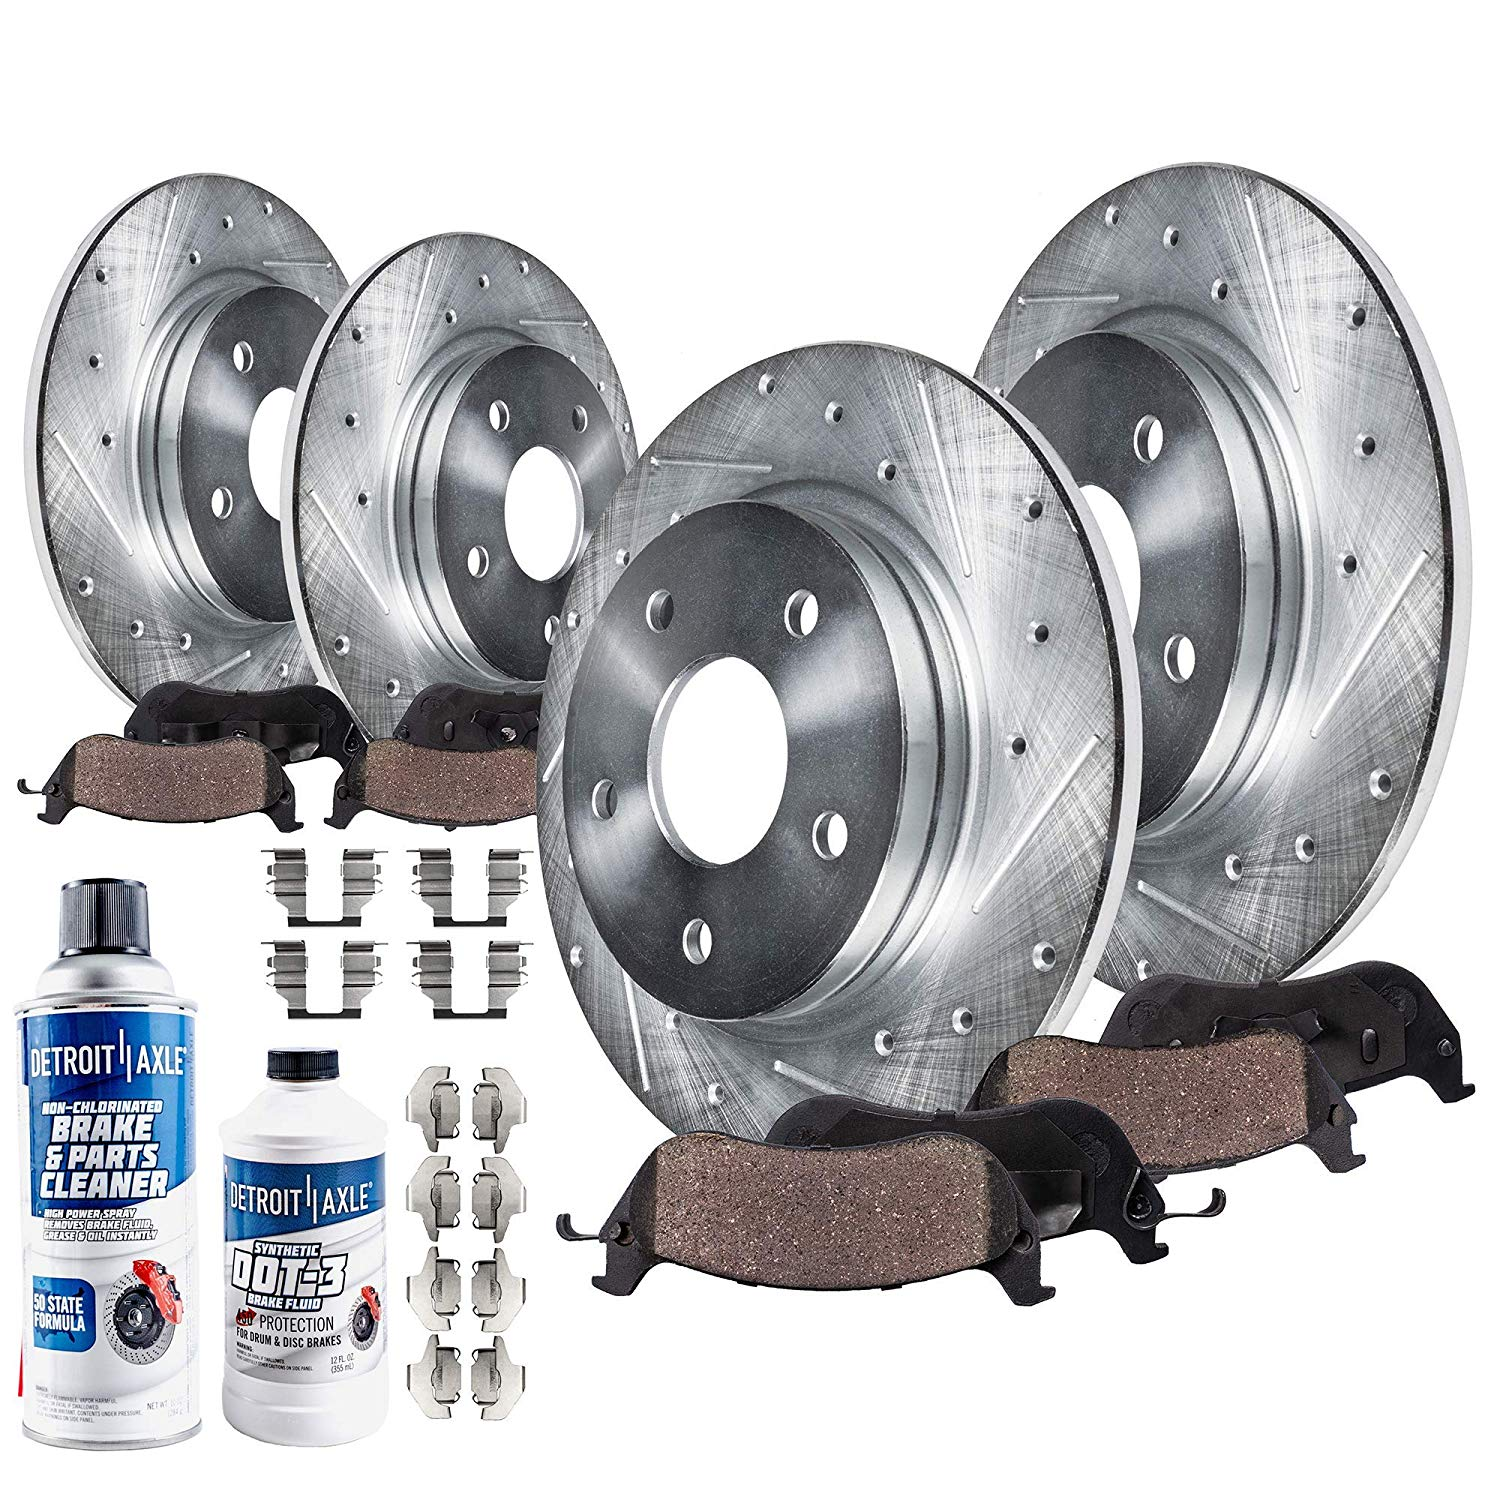 Front & Rear Drilled Slotted Brake Rotors + Pads for 13-16 Subaru BRZ